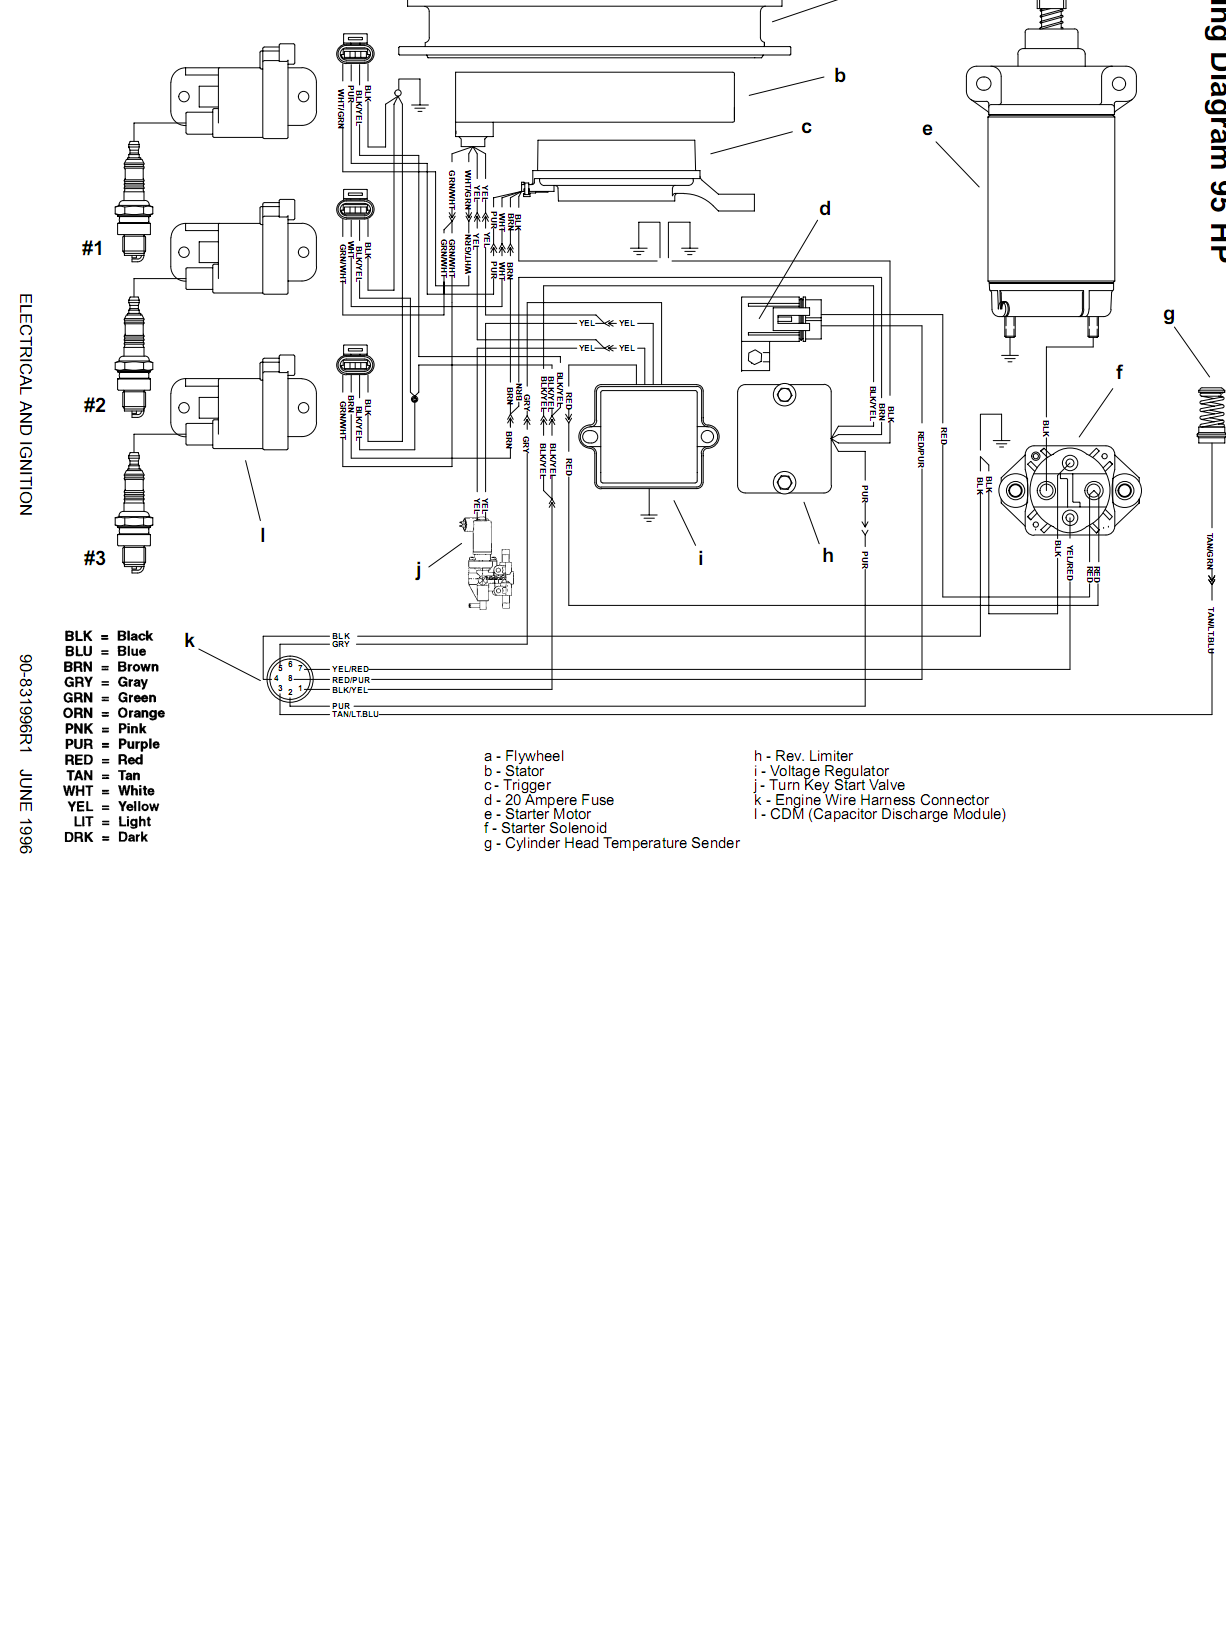 2012 05 01_141639_95hp_wiring_diagram i have purchased a 1994 searay sea raider with a 90hp sportjet and sea ray boat wiring diagram at bayanpartner.co